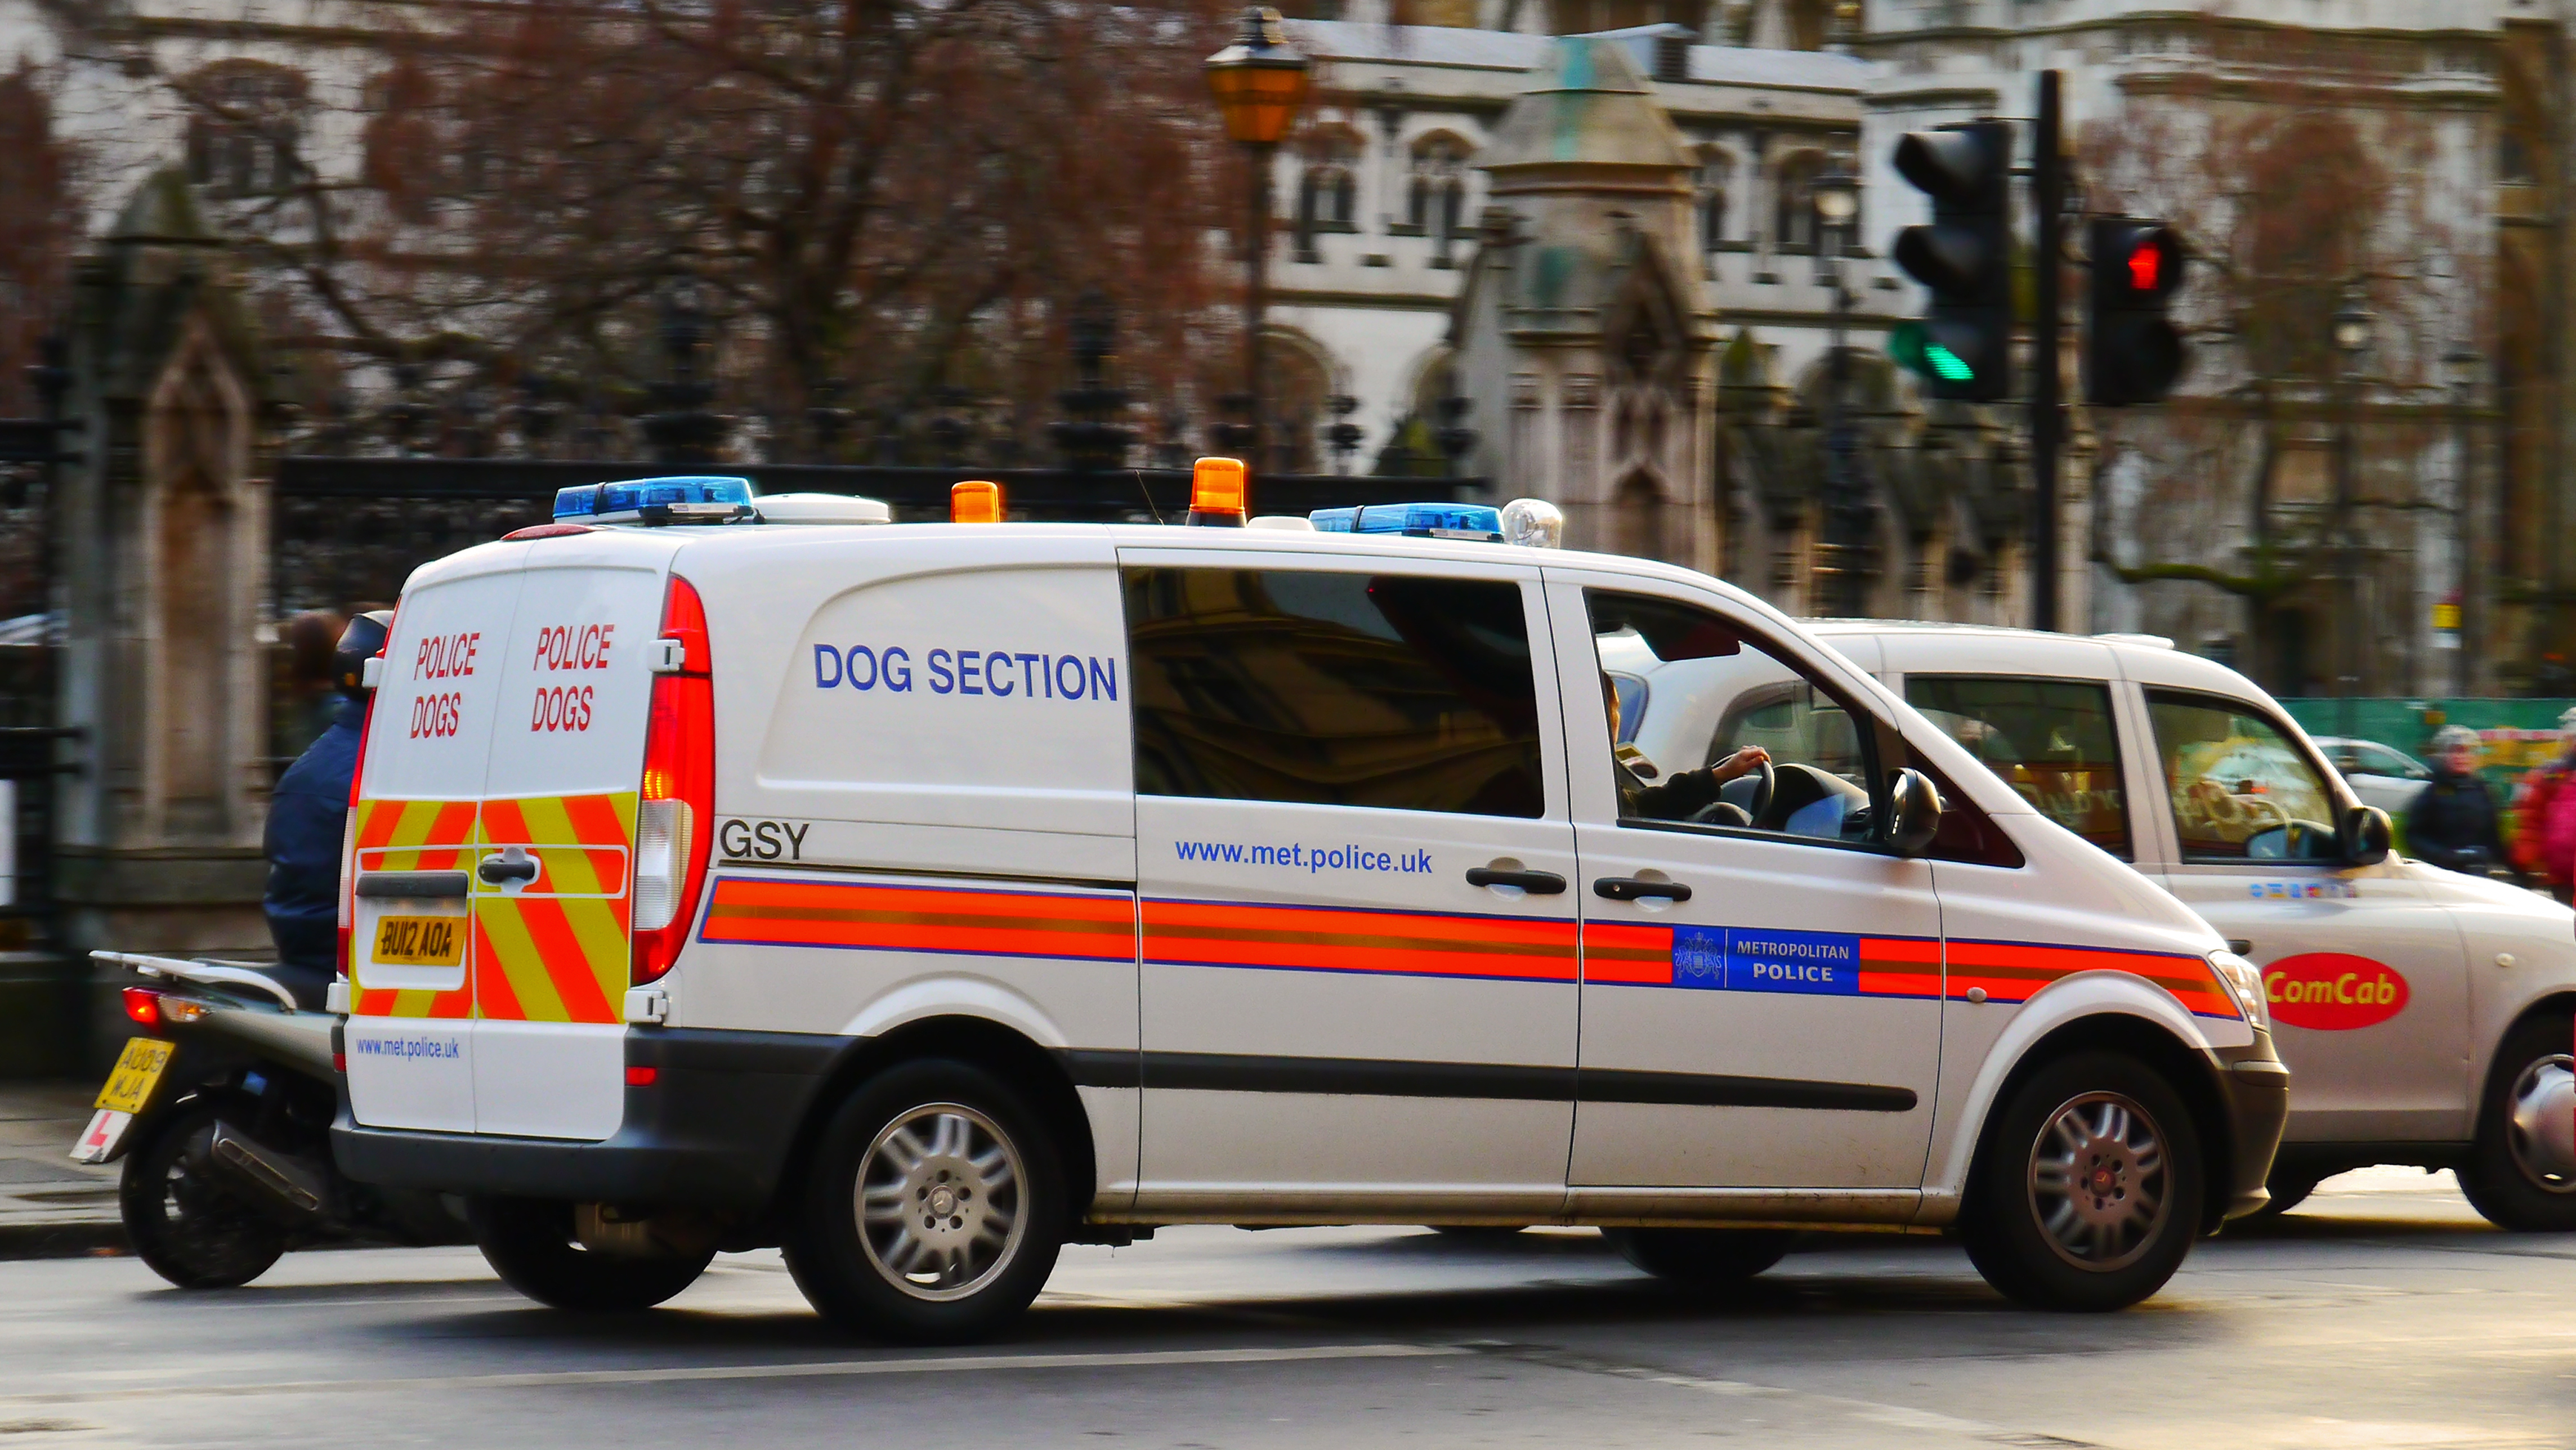 File Metropolitan Police 2012 Mercedes Benz Vito 113 CDI City of